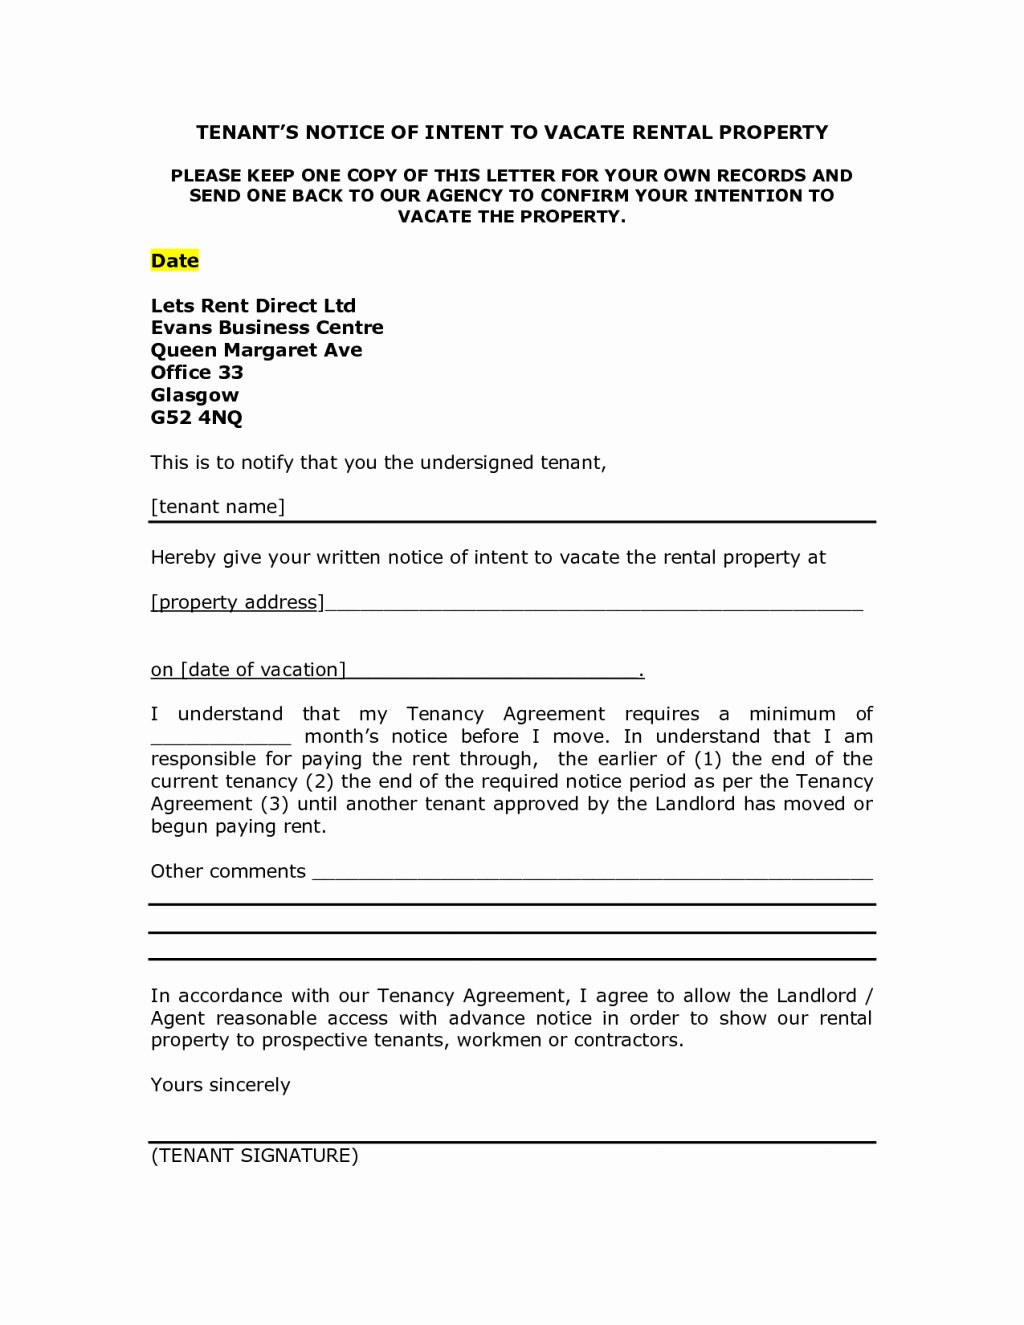 Intent to Vacate Sample Letter Best Of Landlord Notice Letter to Tenant Template Examples